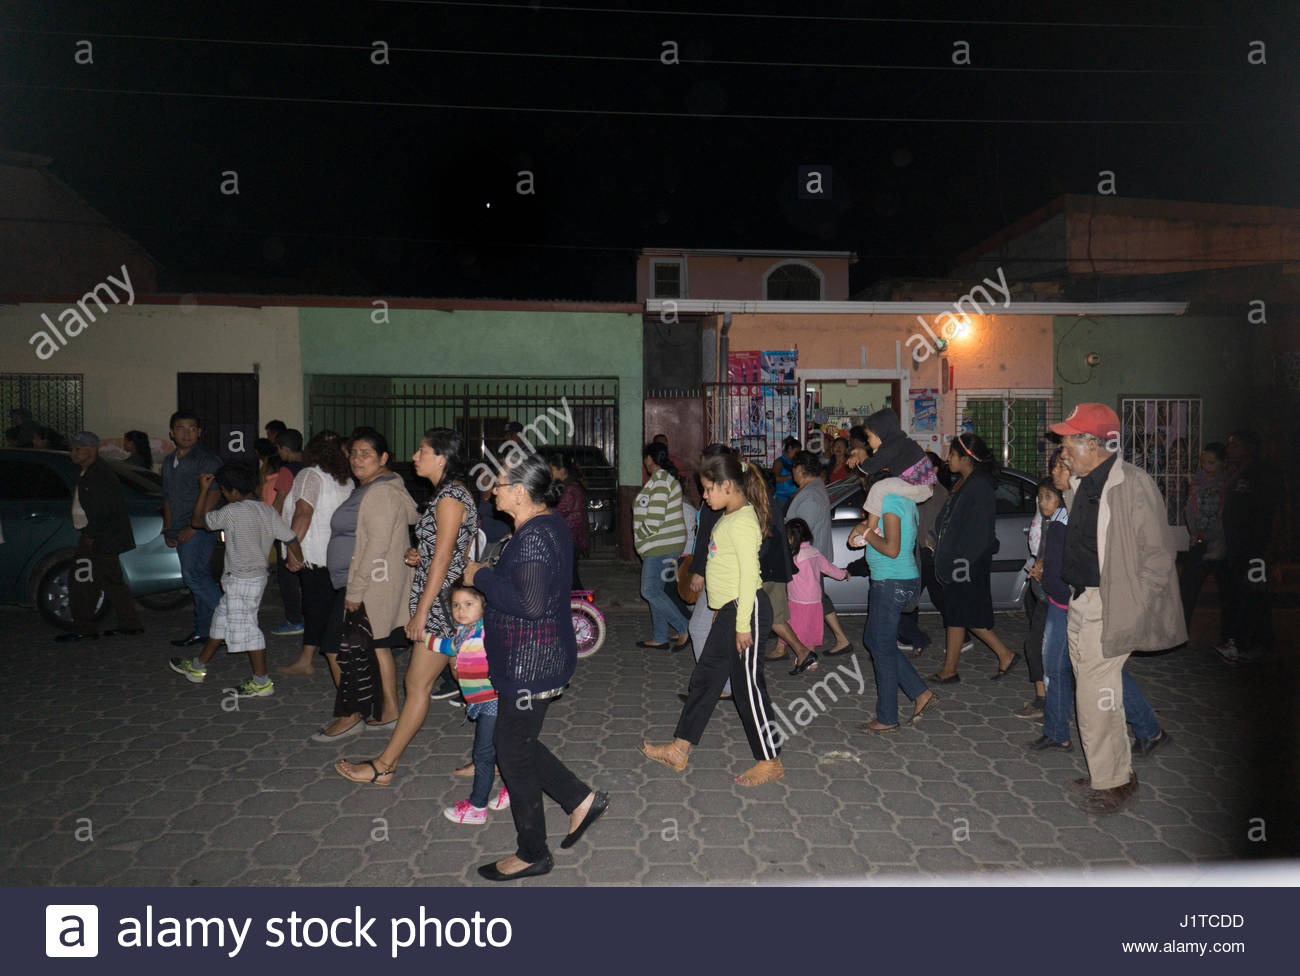 good-friday-religious-procession-2017-J1TCDD.jpg